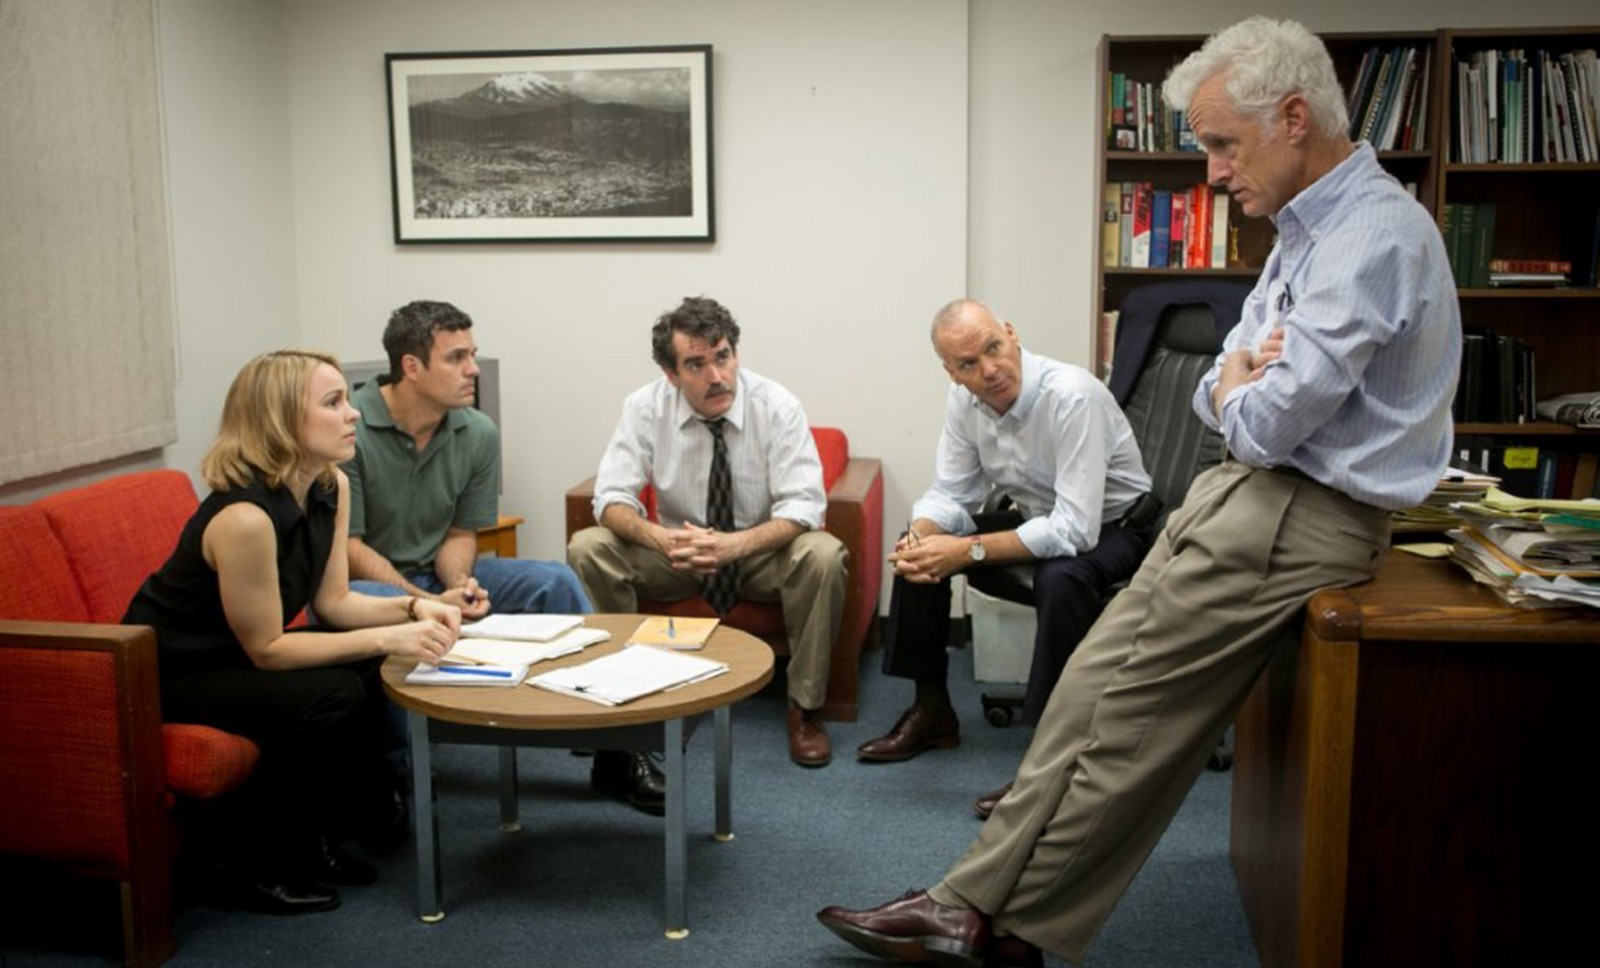 From left, Rachel McAdams, Mark Ruffalo, Brian d'Arcy James, Michael Keaton and John Slattery star in 'Spotlight.'